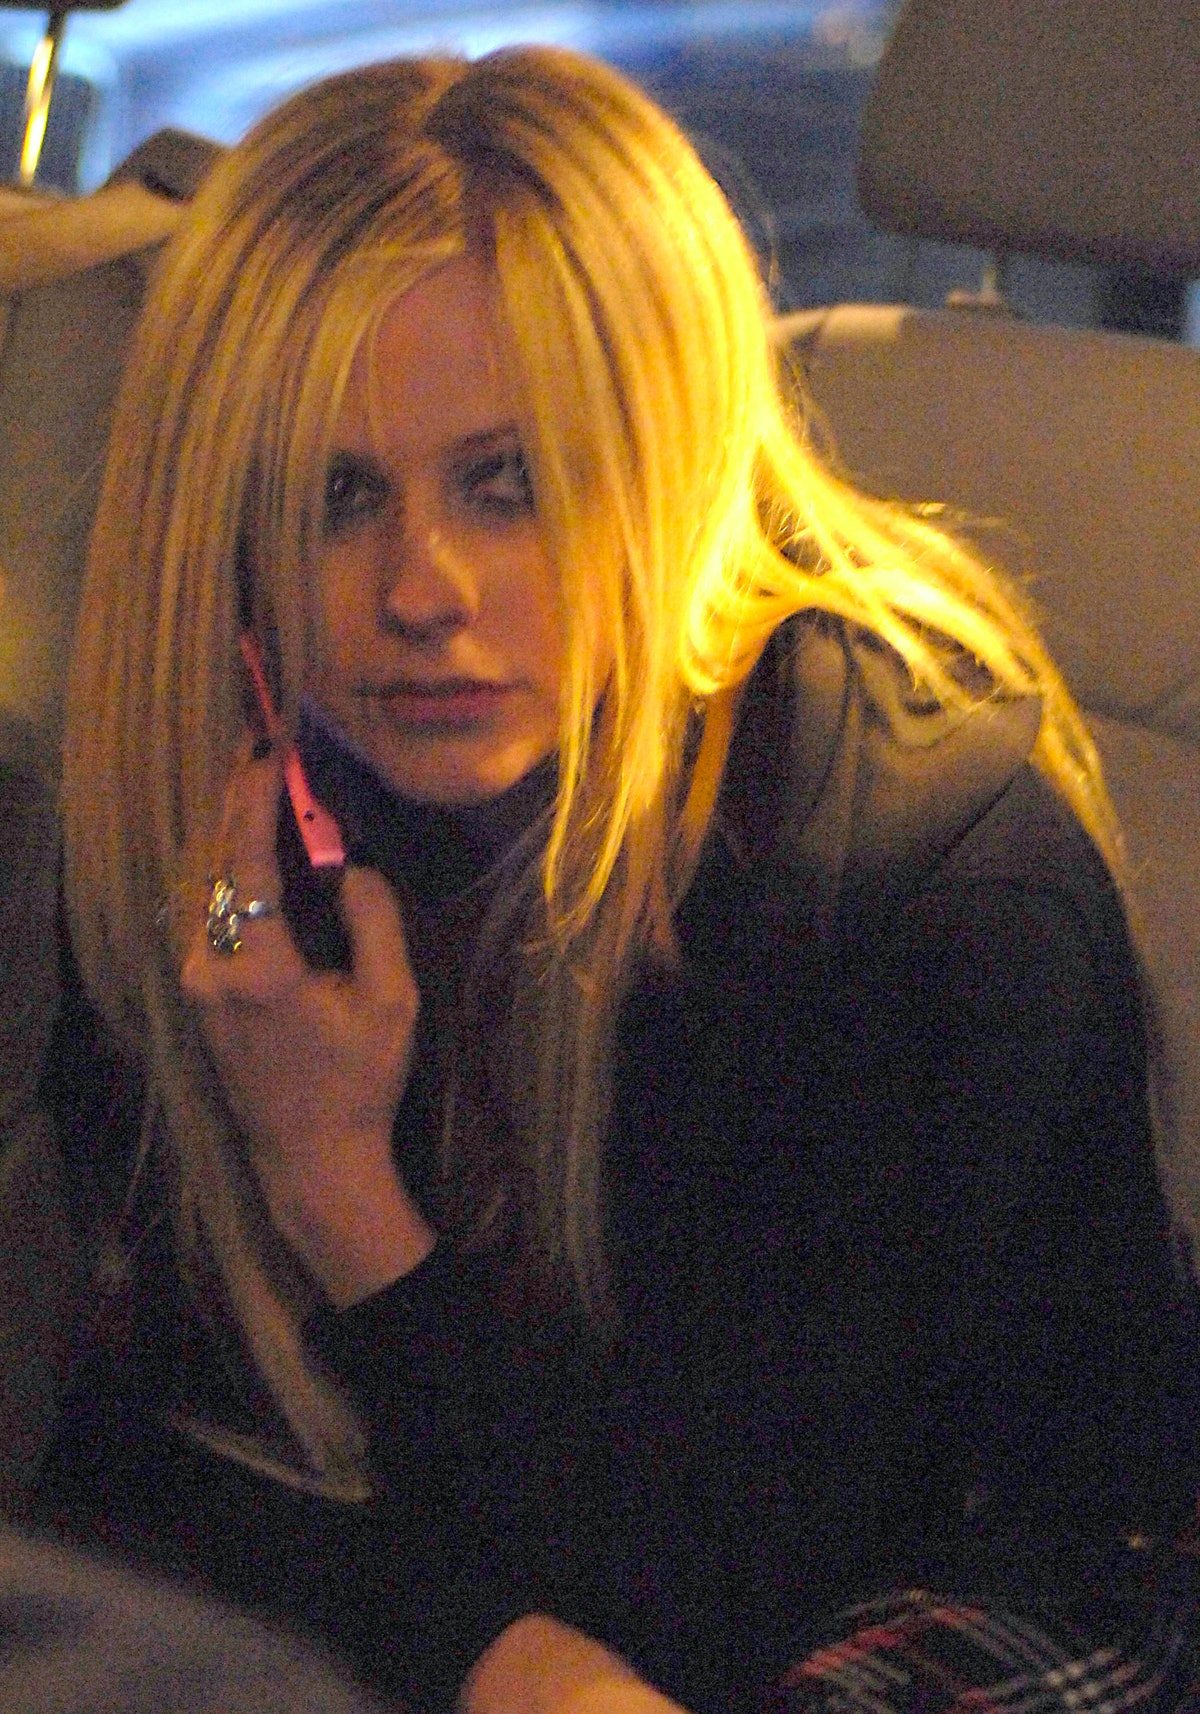 Avril Lavigne Sighting at the Mayfair Hotel in London - March 21, 2007